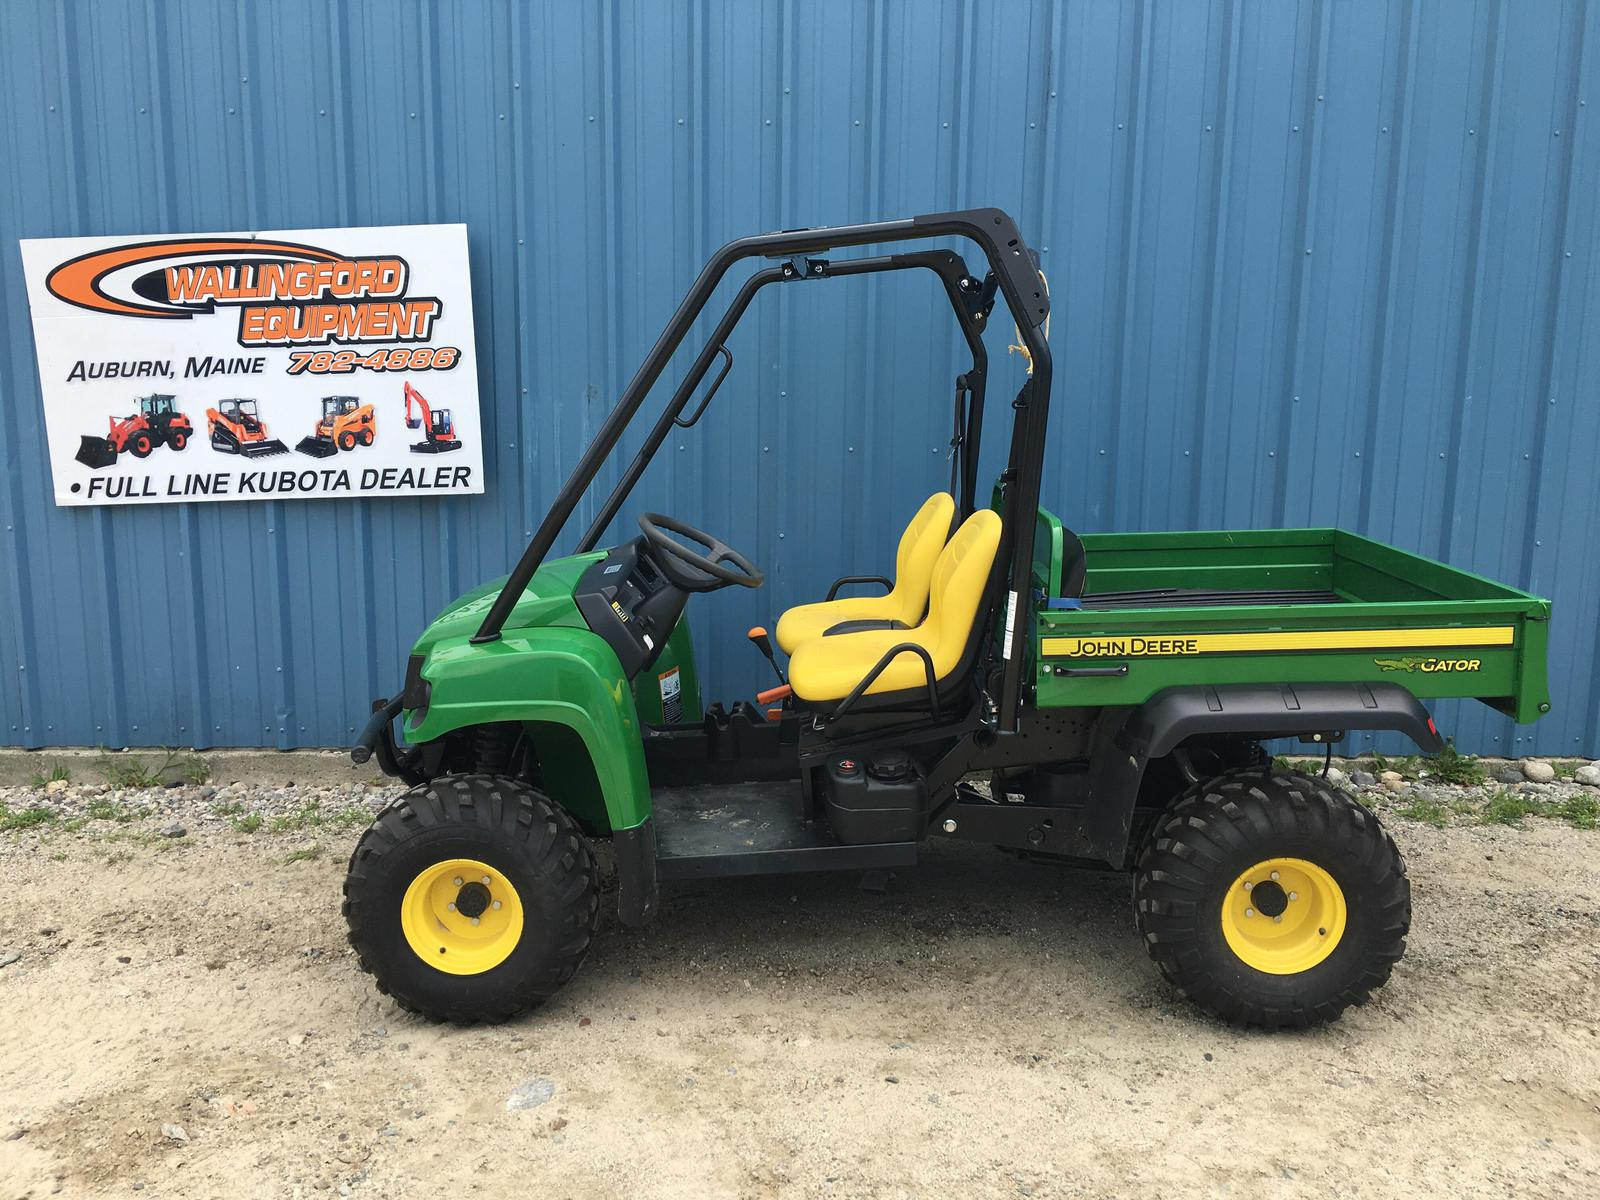 2013 John Deere Gator Hpx 4x4 For Sale In Auburn Me Wallingford